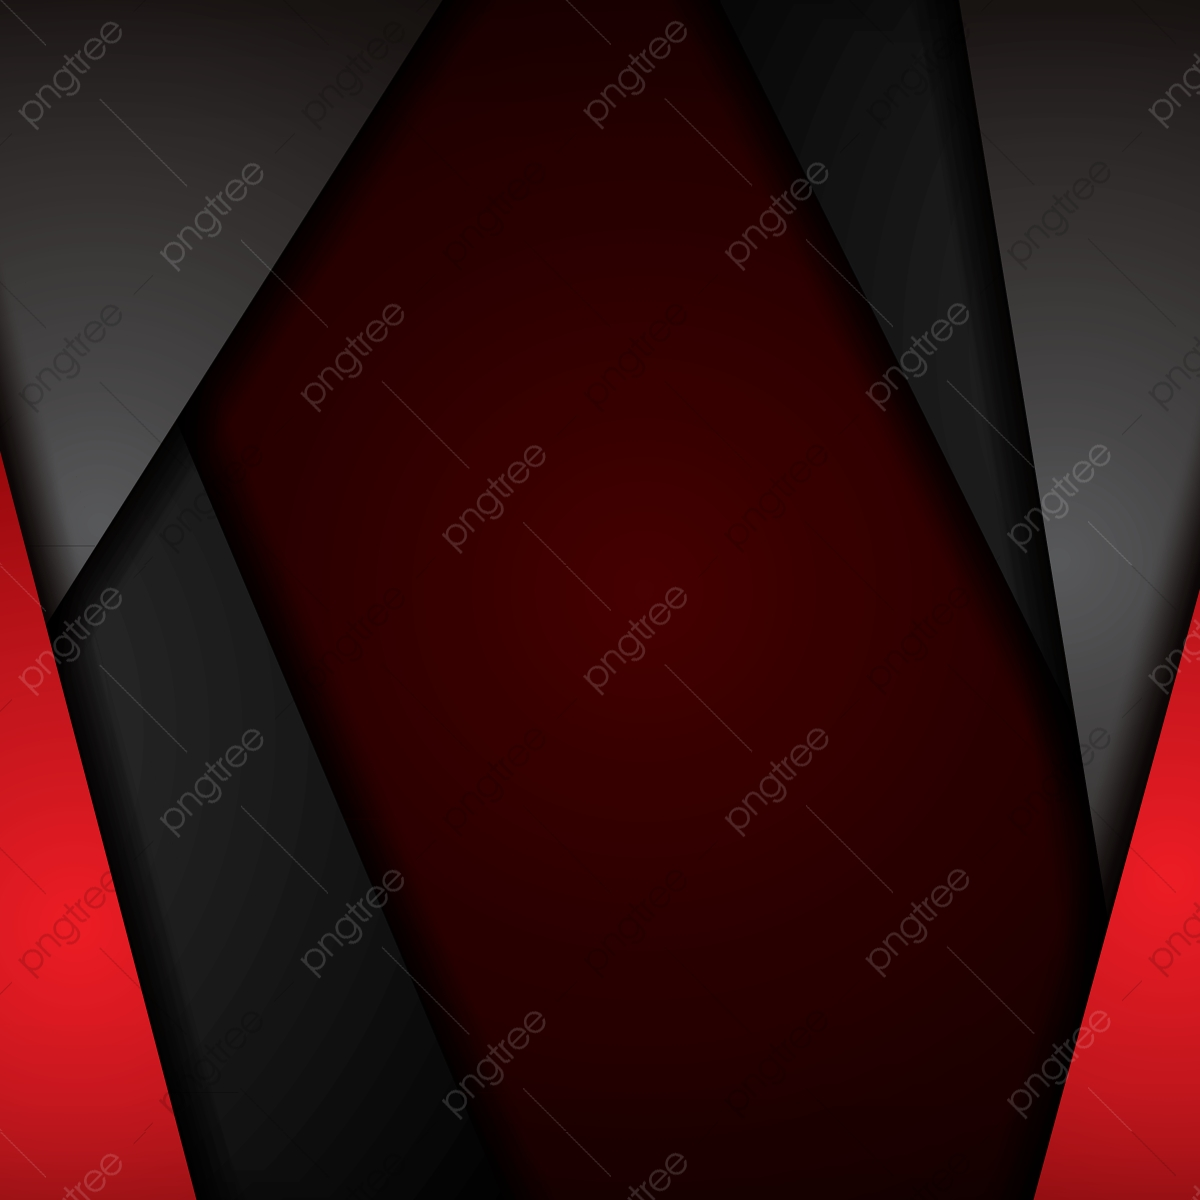 abstract red black design